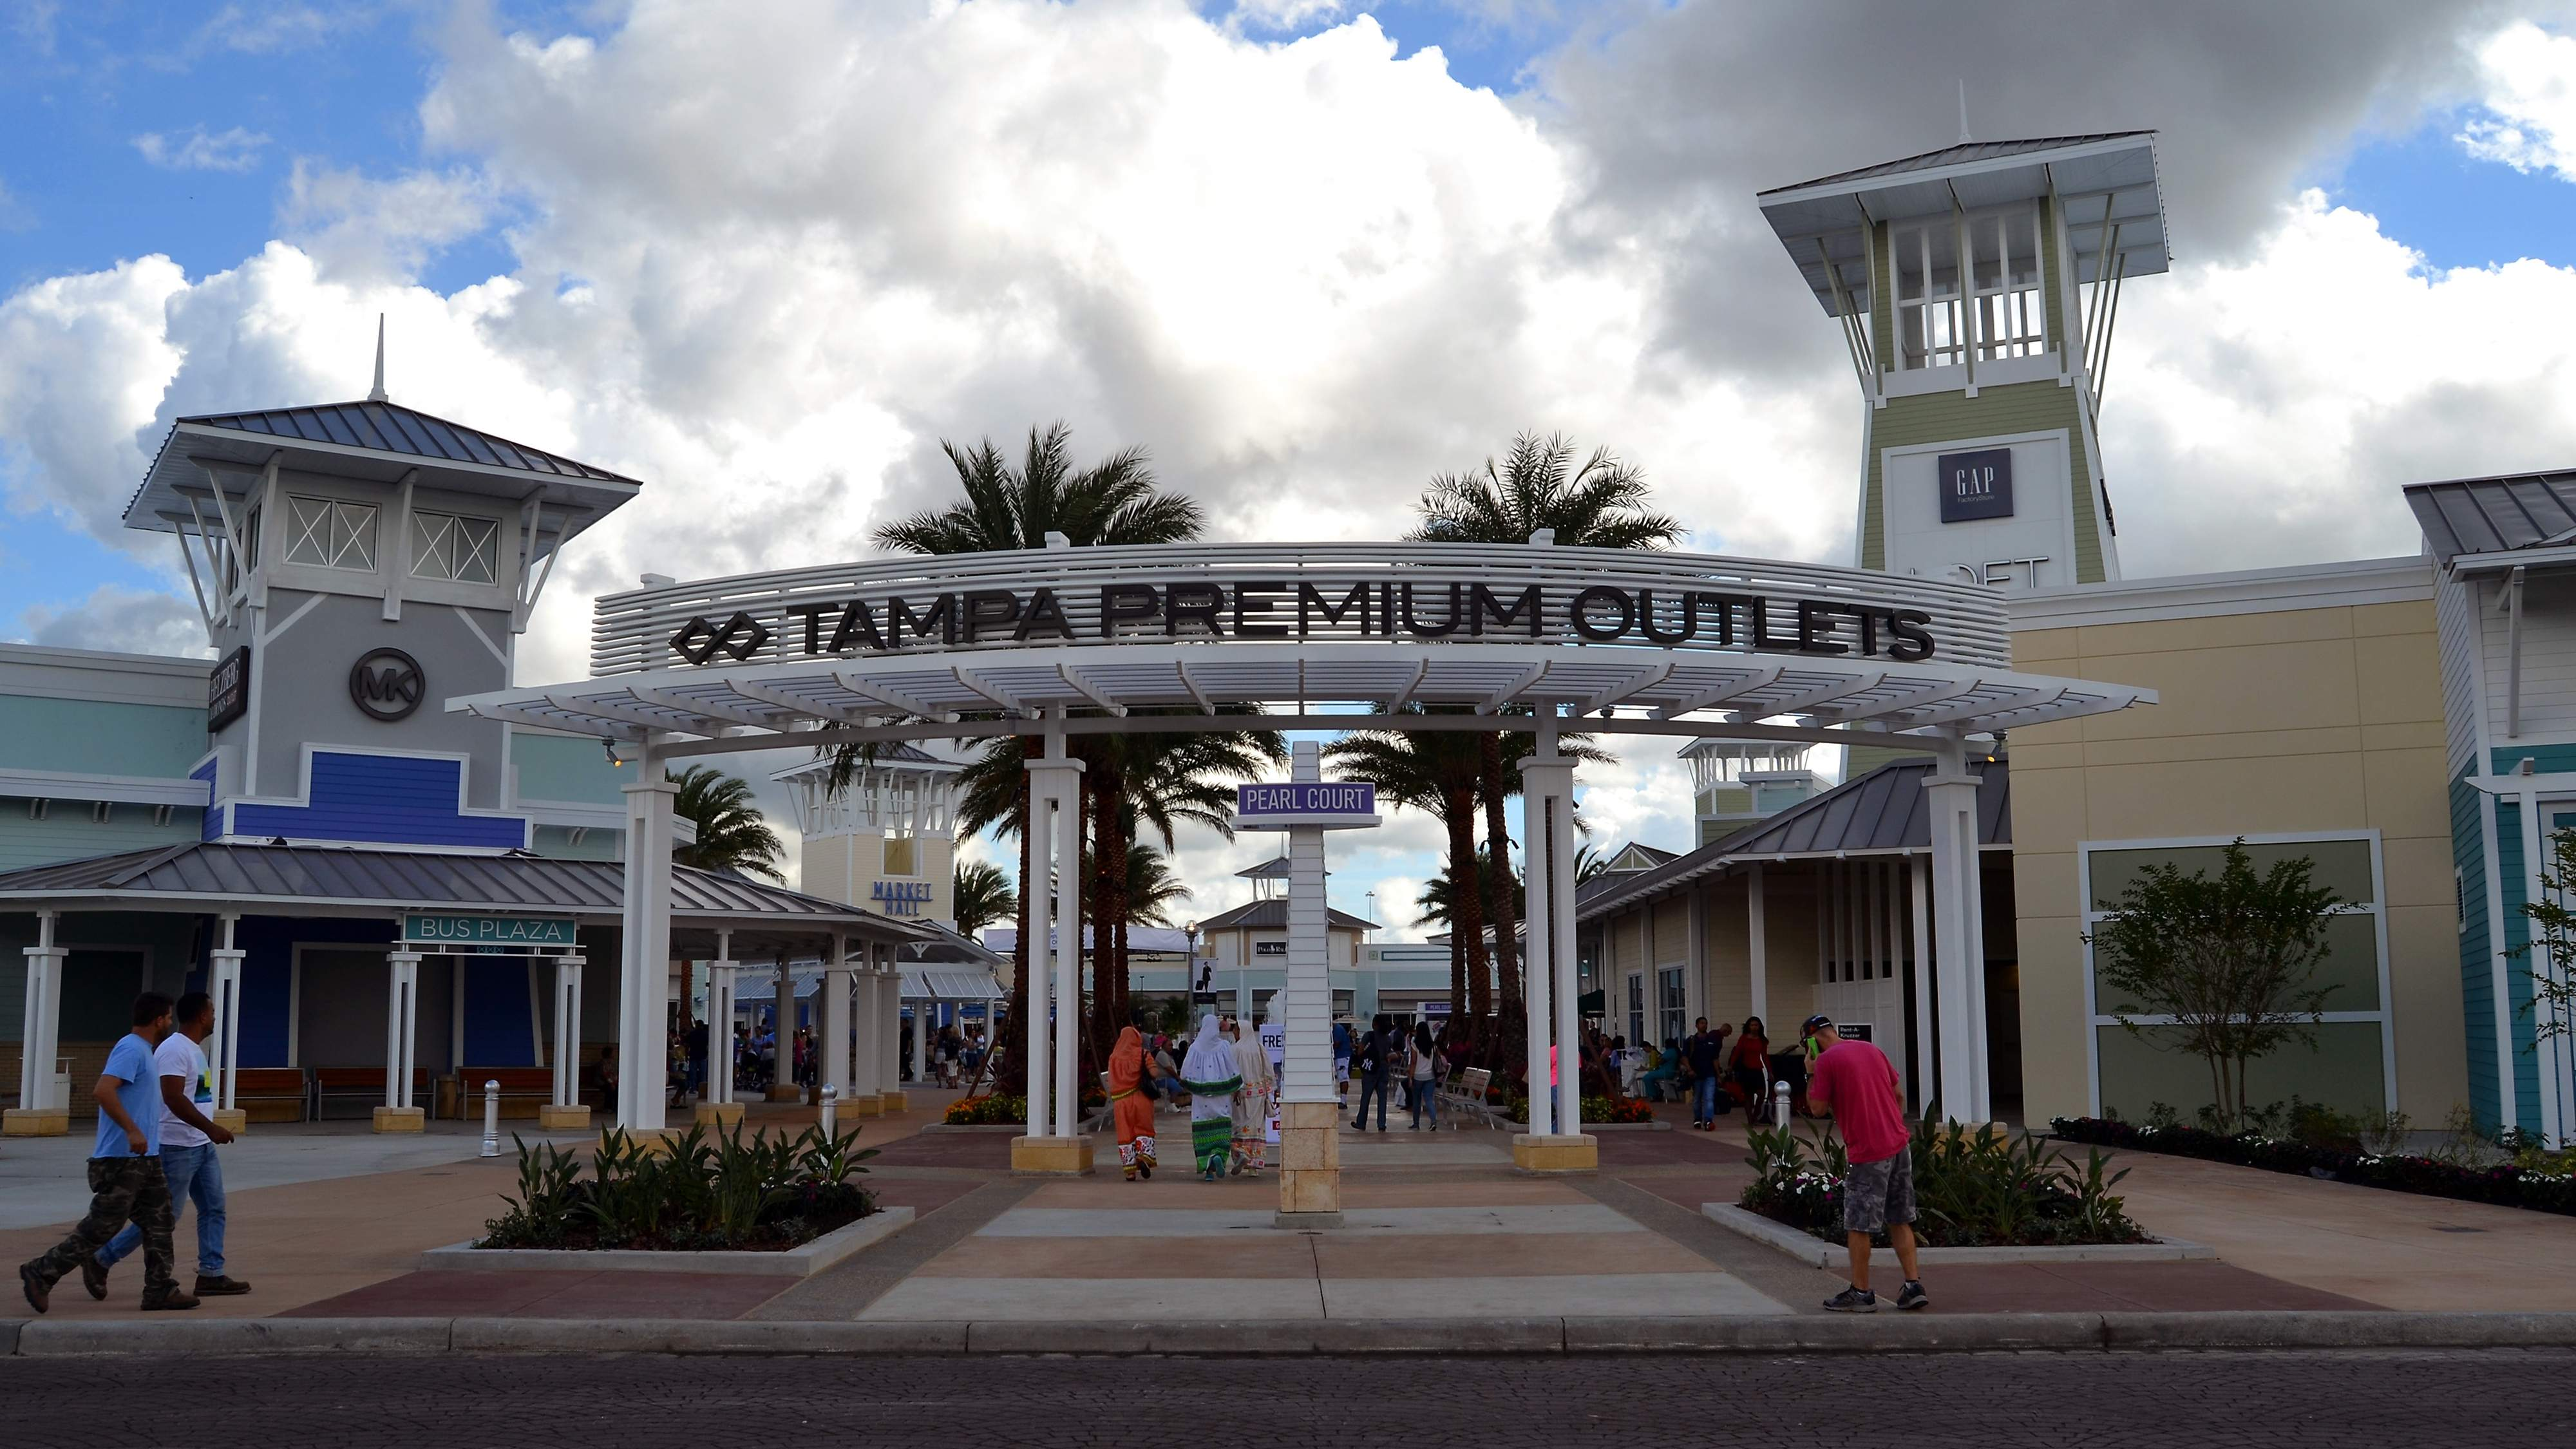 d235a2691 Search. Tampa Premium Outlets